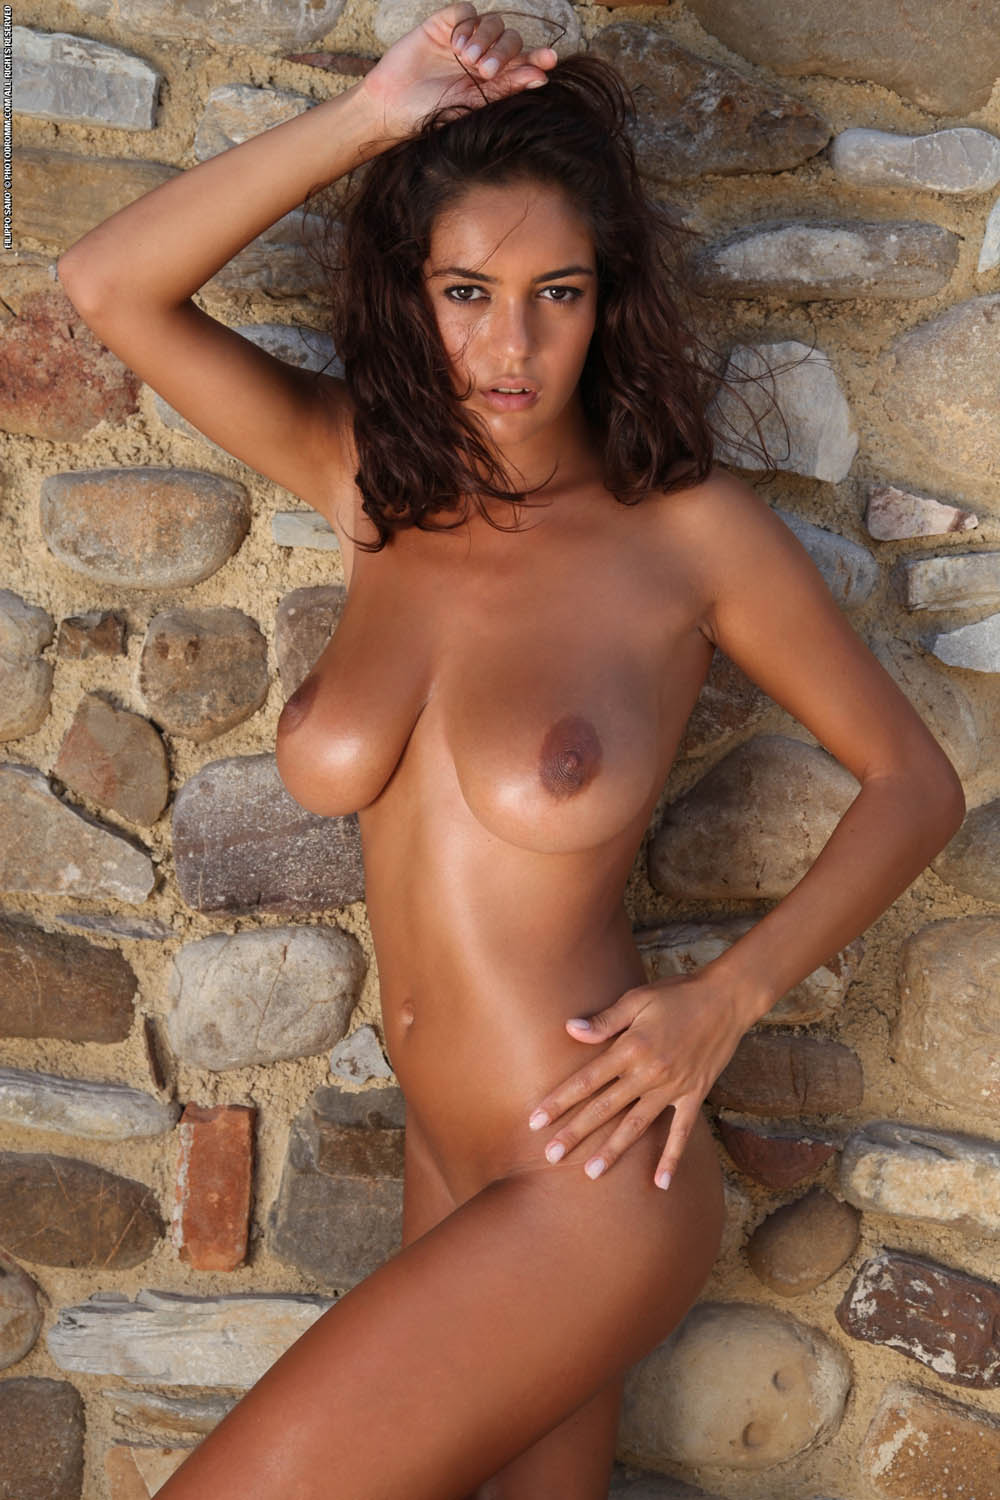 Beauty tanned sex gallery who enjoy